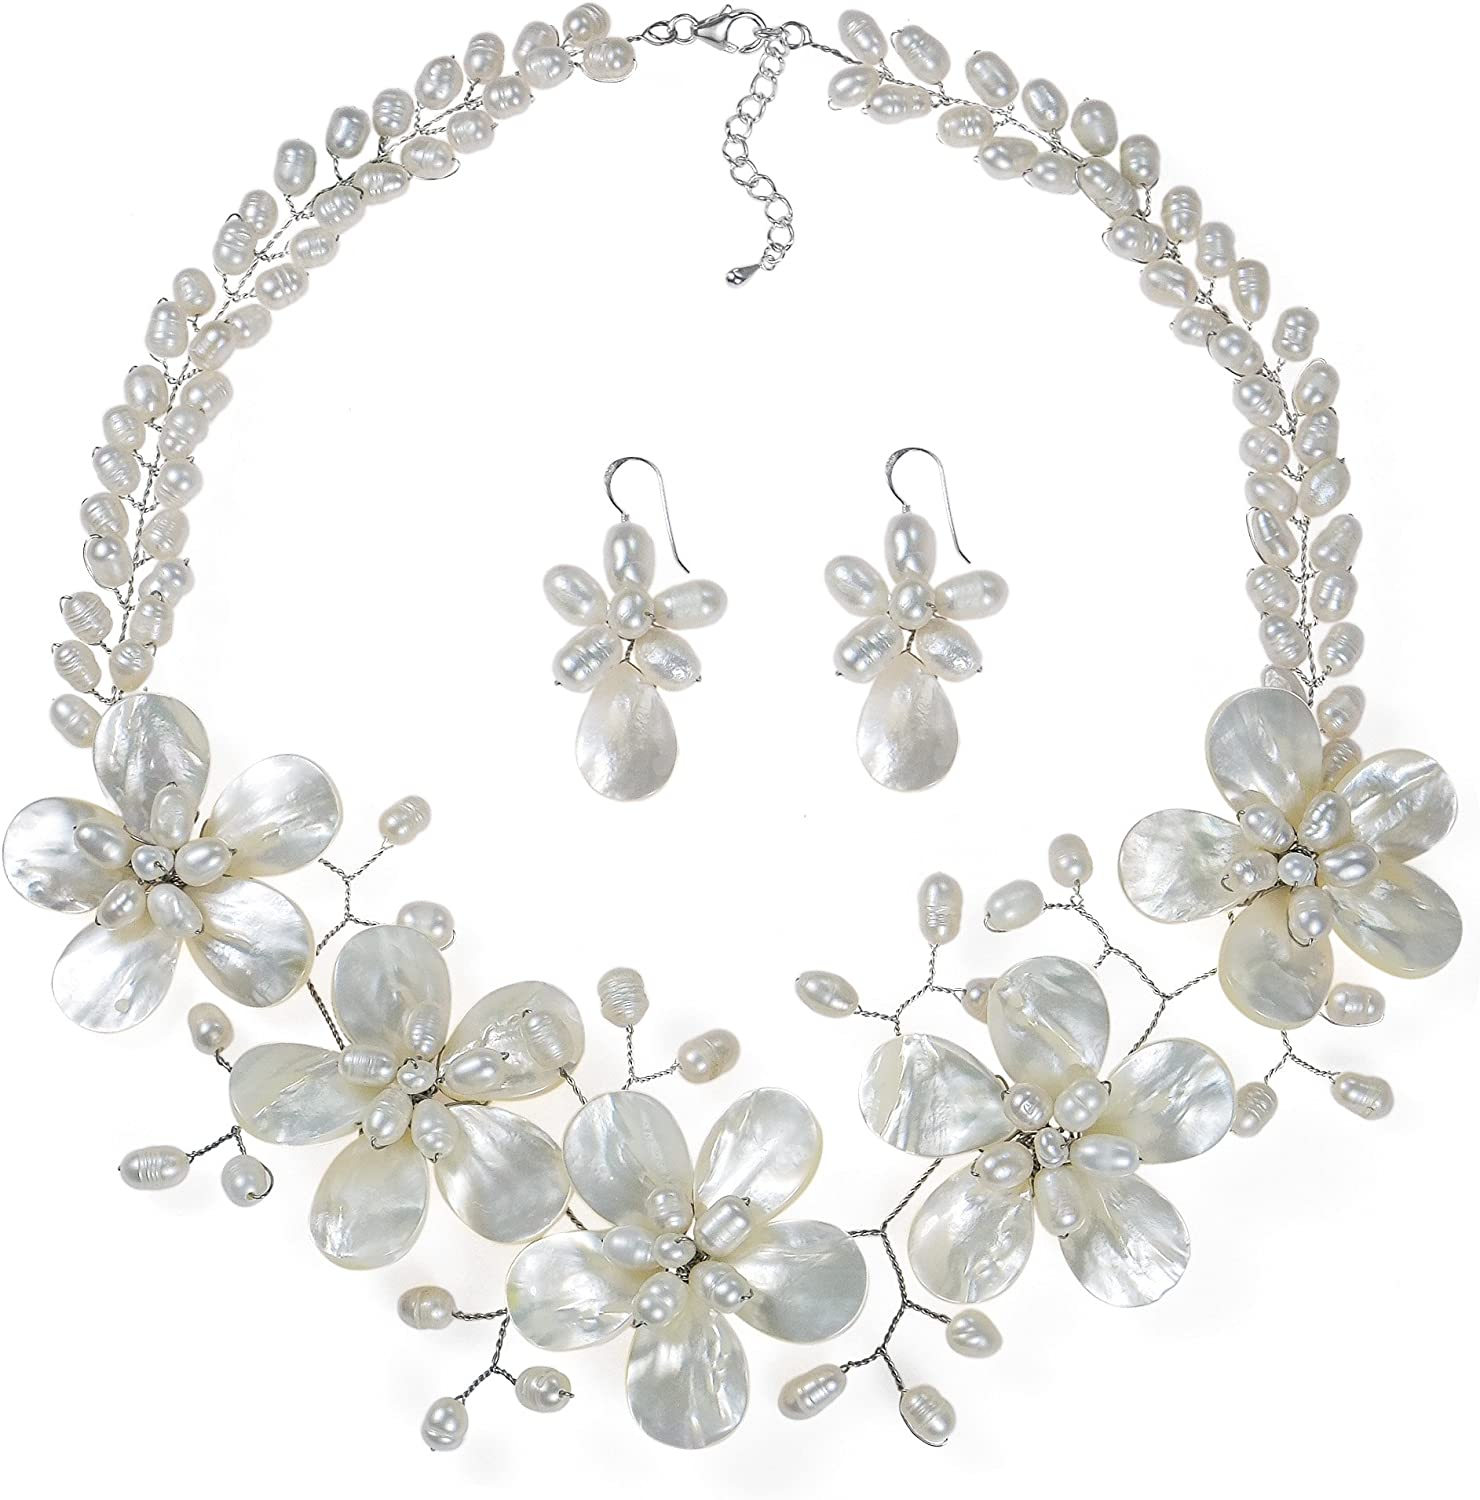 Latest item AeraVida Floral White Mother of At the price Pearl Whit Cultured Freshwater